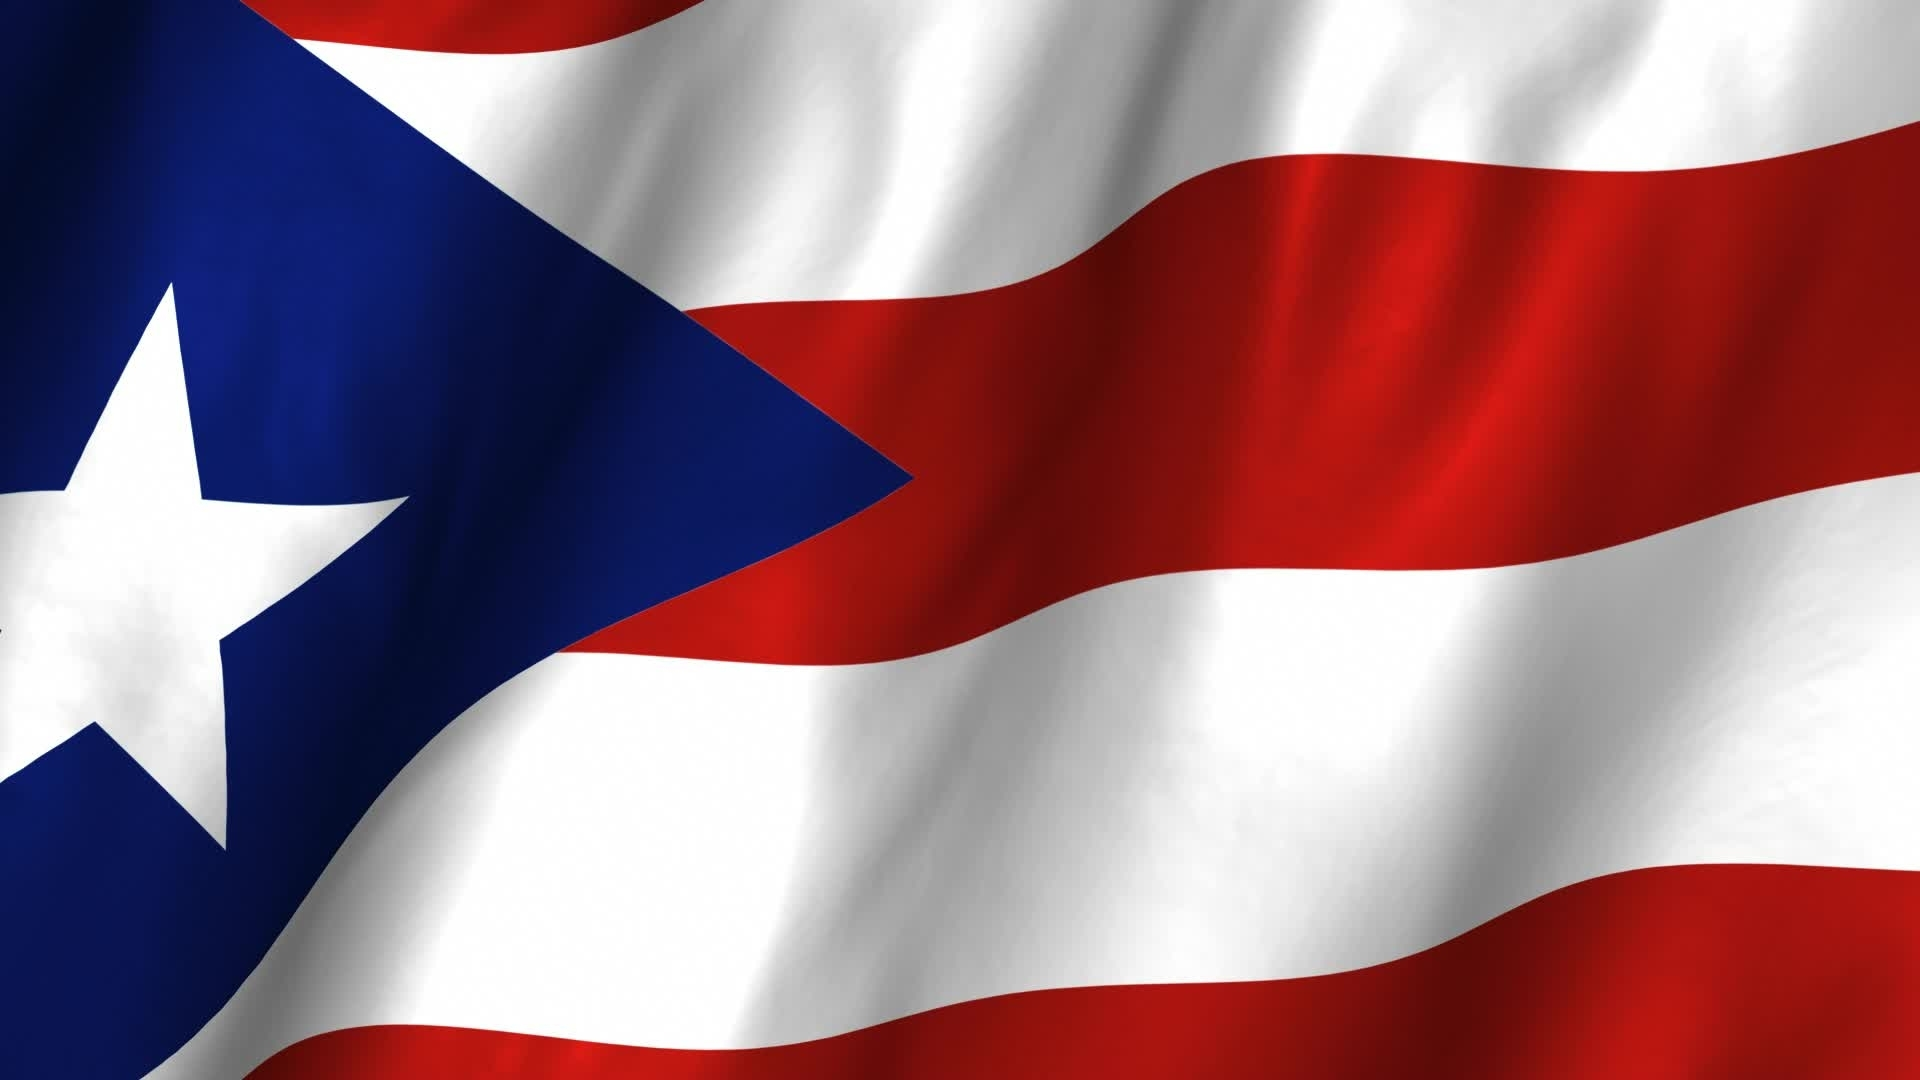 puerto rico flag desktop wallpaper 50702 1920x1080 px ~ hdwallsource